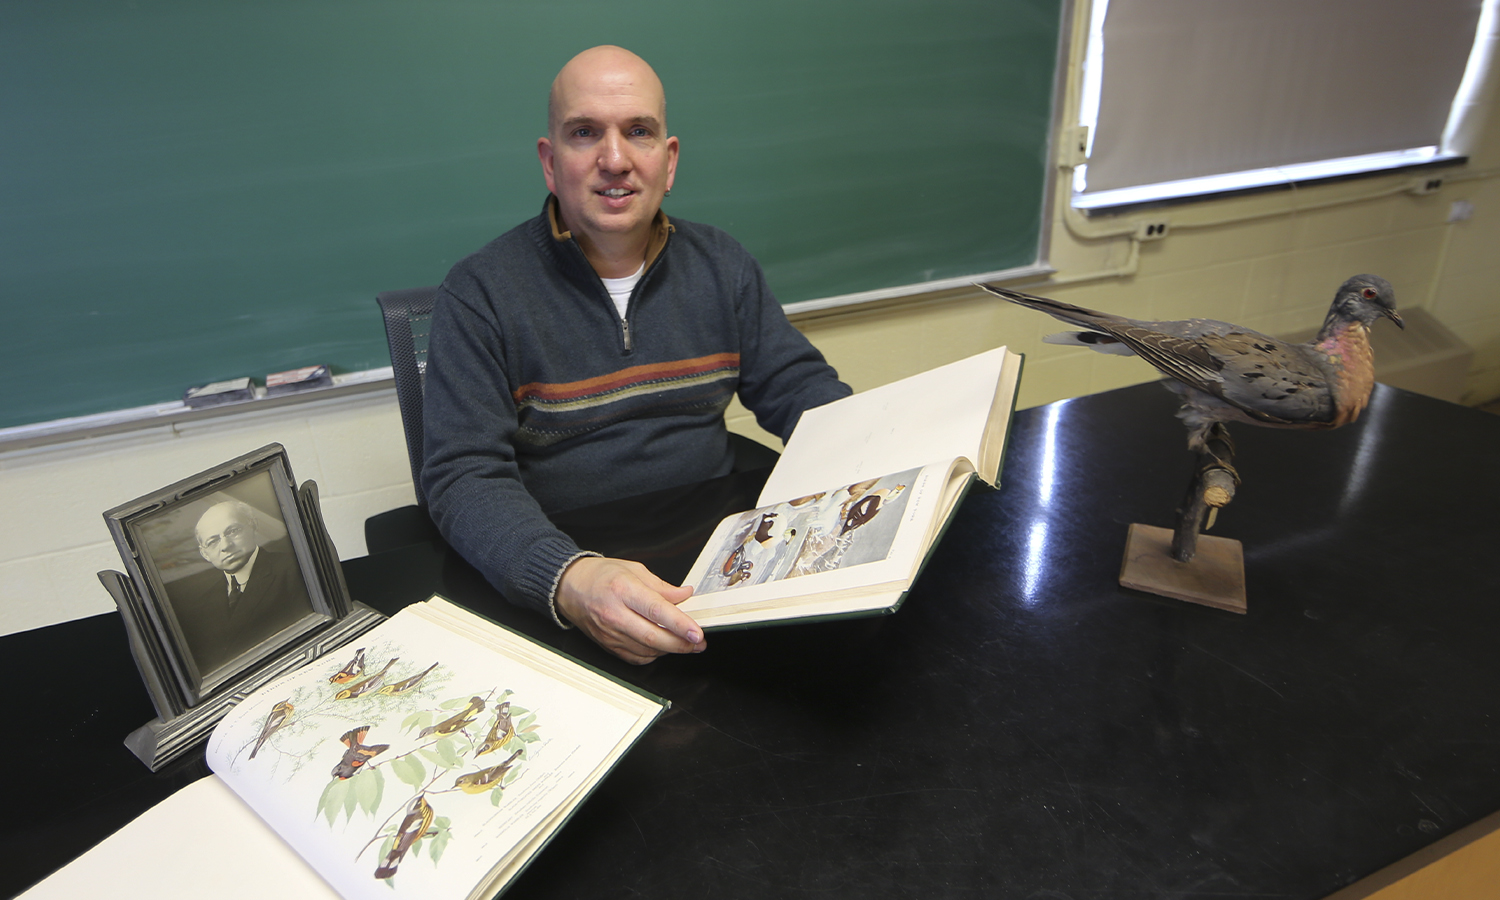 Deutschlander with bird collection in Eaton Hall